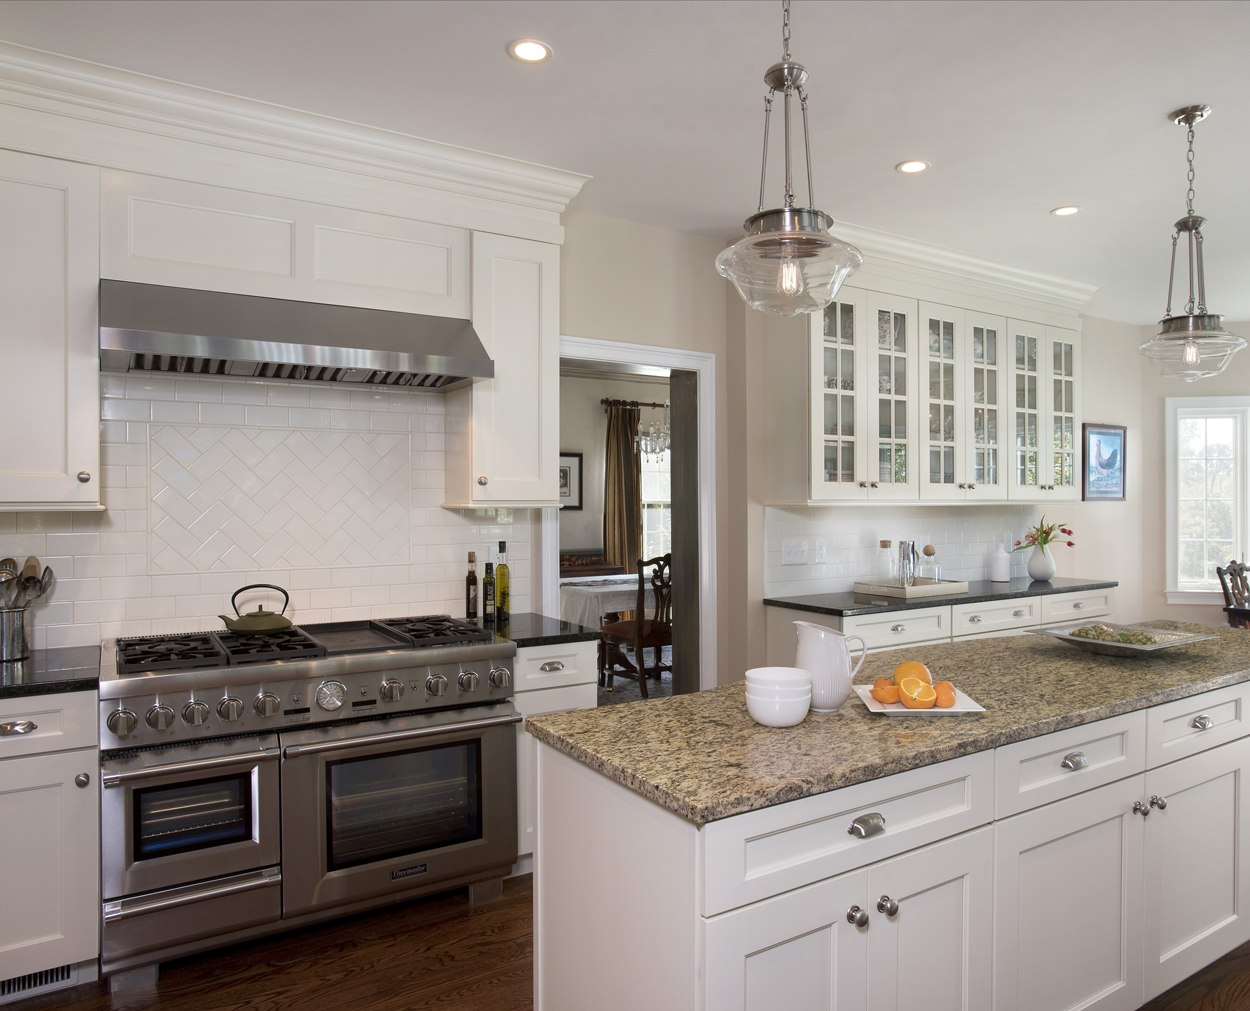 granite island, with commercial range in Wilton Ct kitchen renovation